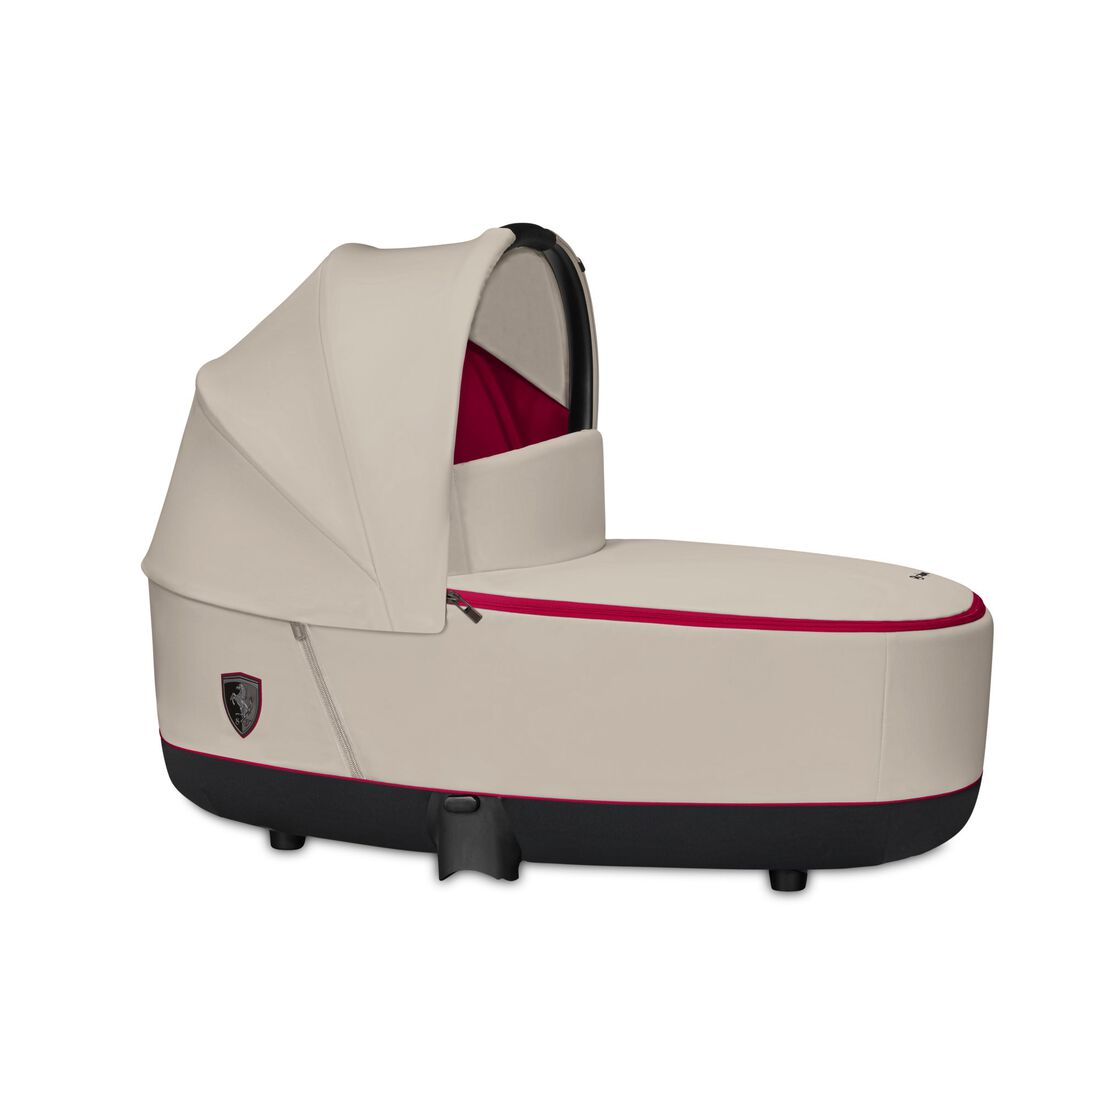 CYBEX Priam Lux Carry Cot - Ferrari Silver Grey in Ferrari Silver Grey large Bild 1